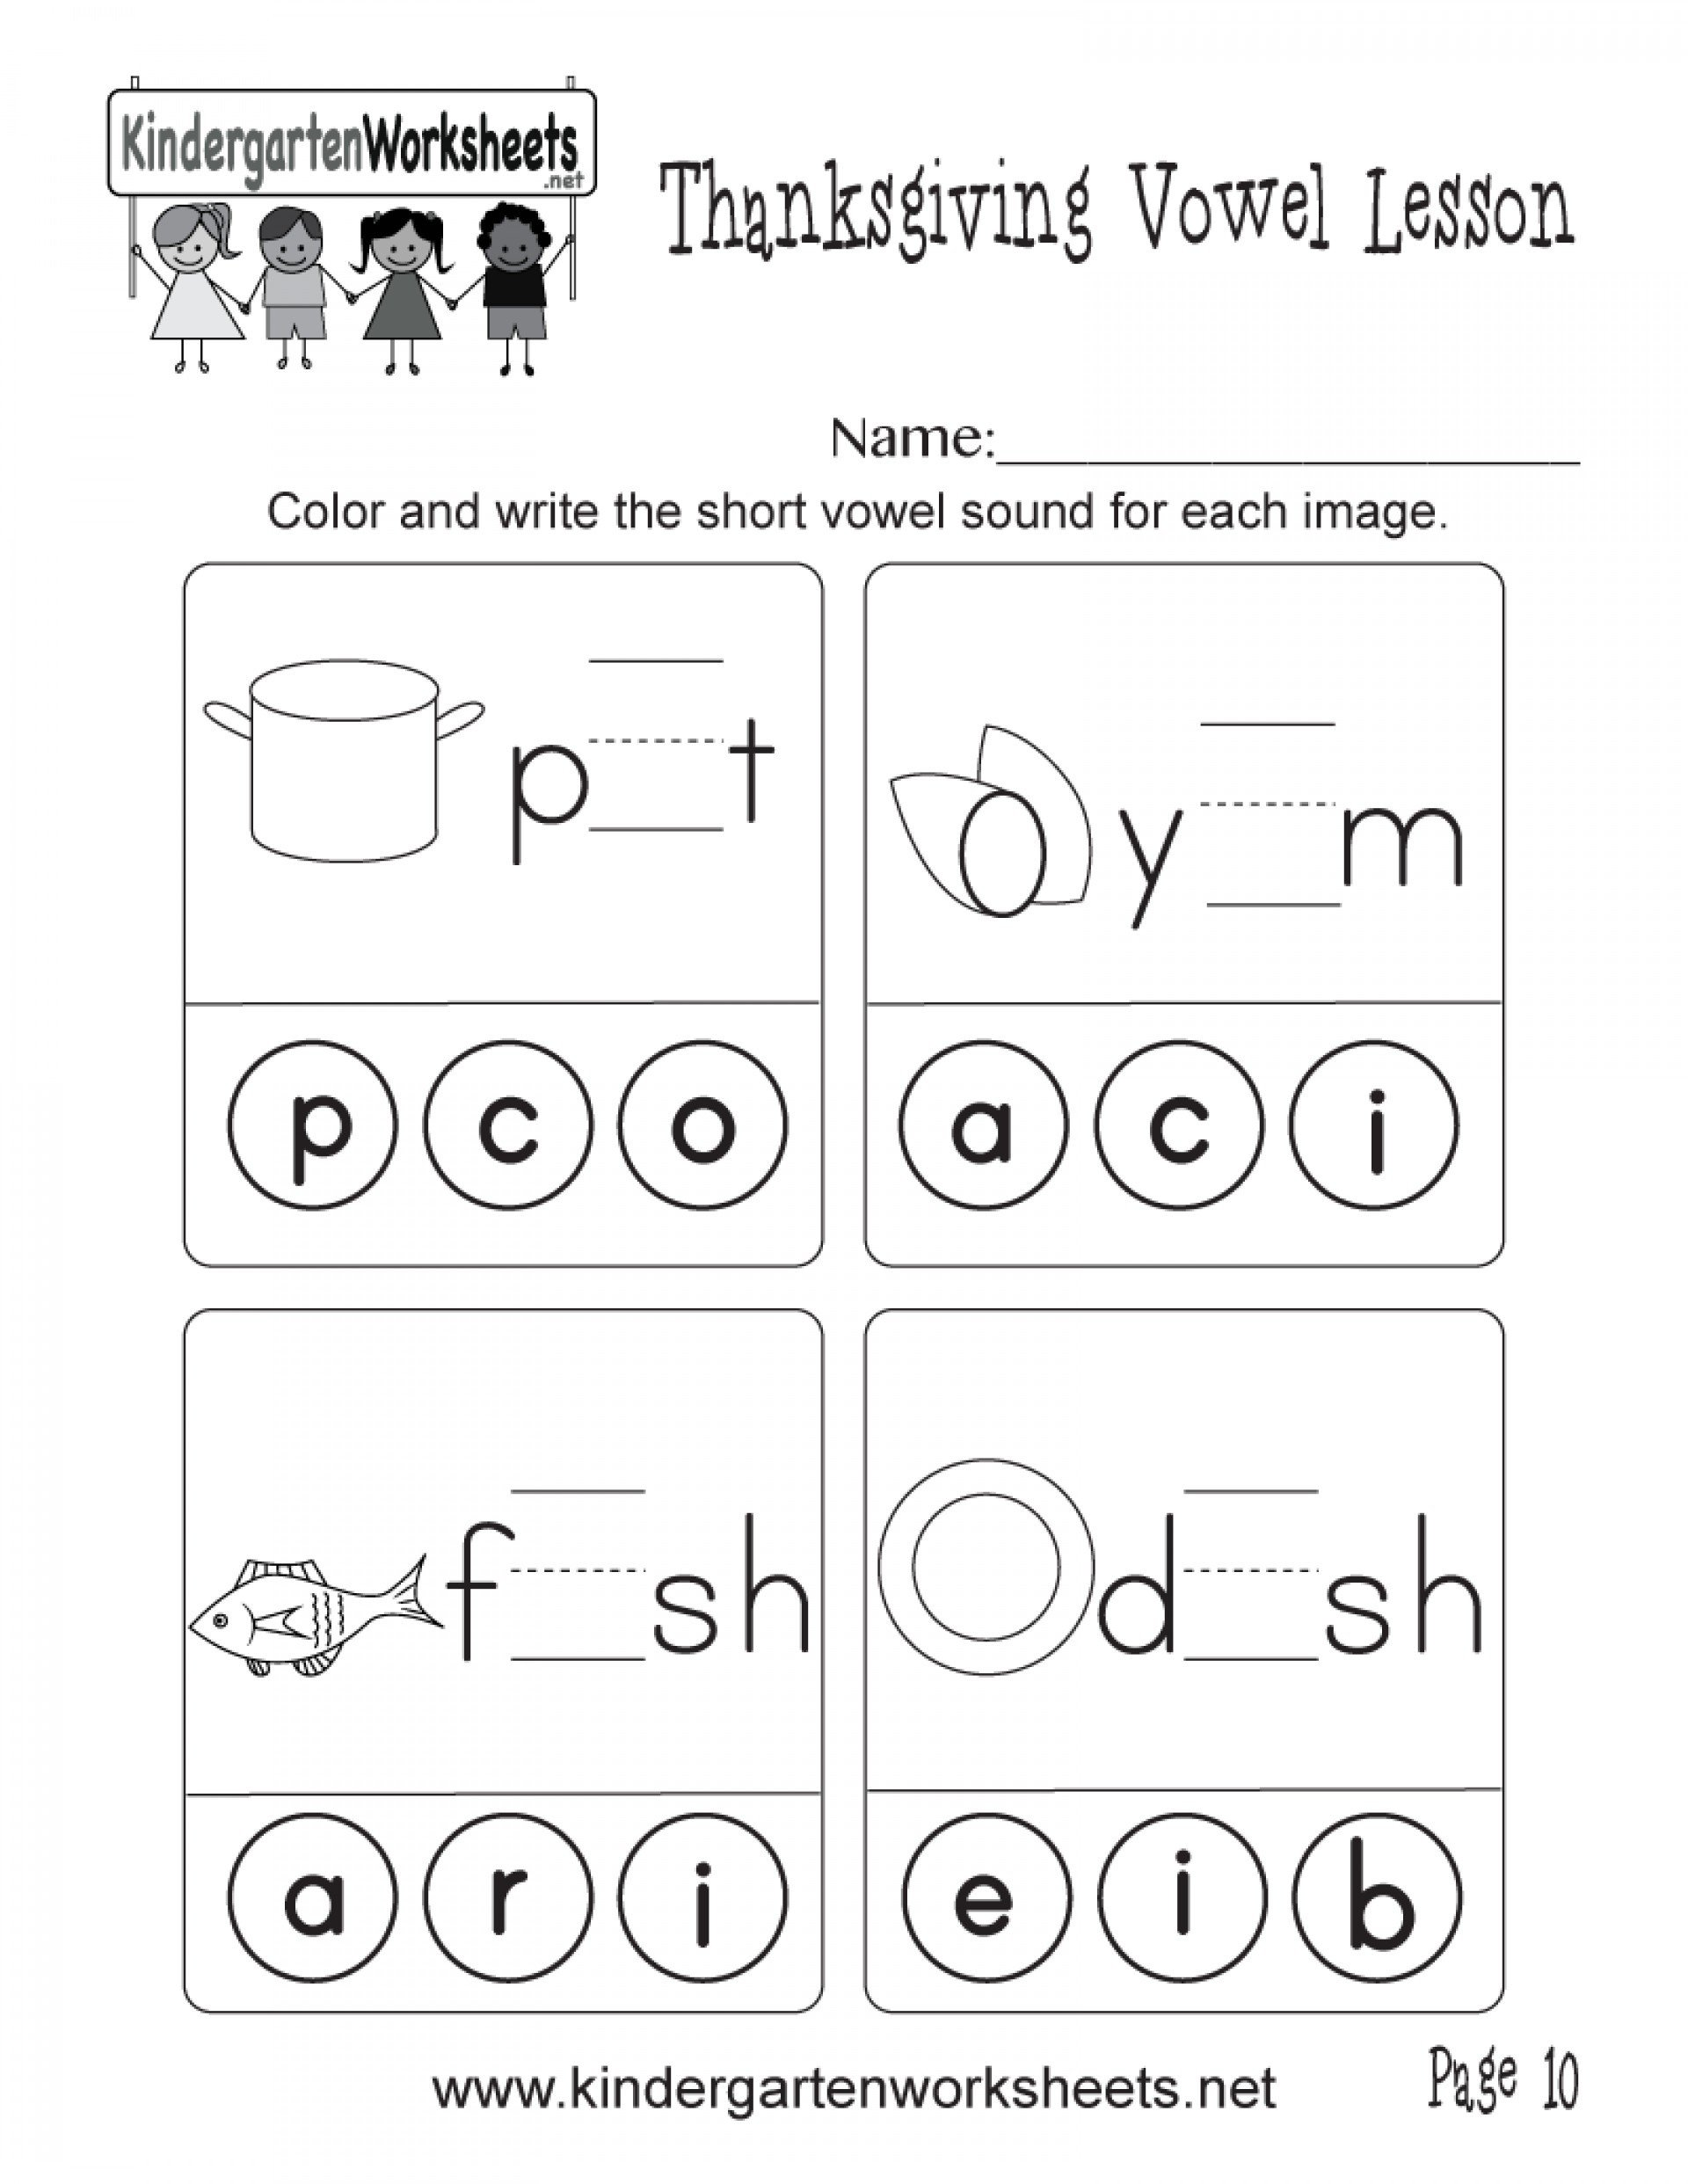 Long Vowel Worksheets for Kindergarten Math Worksheet Printable Short Vowel Worksheets 1st Grade